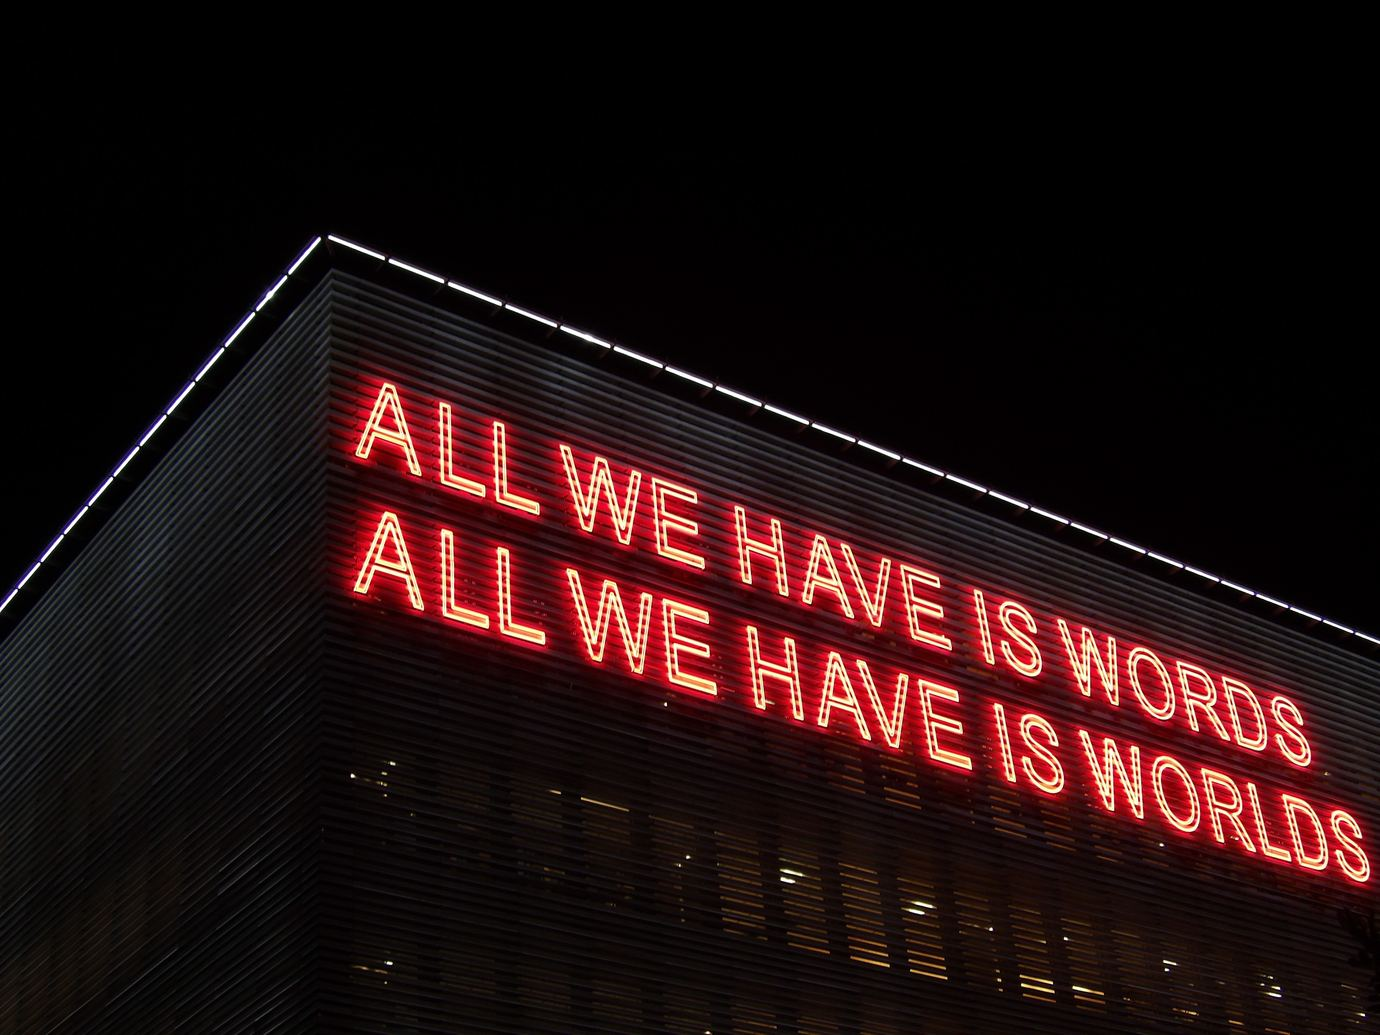 writing challenge LCD words on top of a building at night